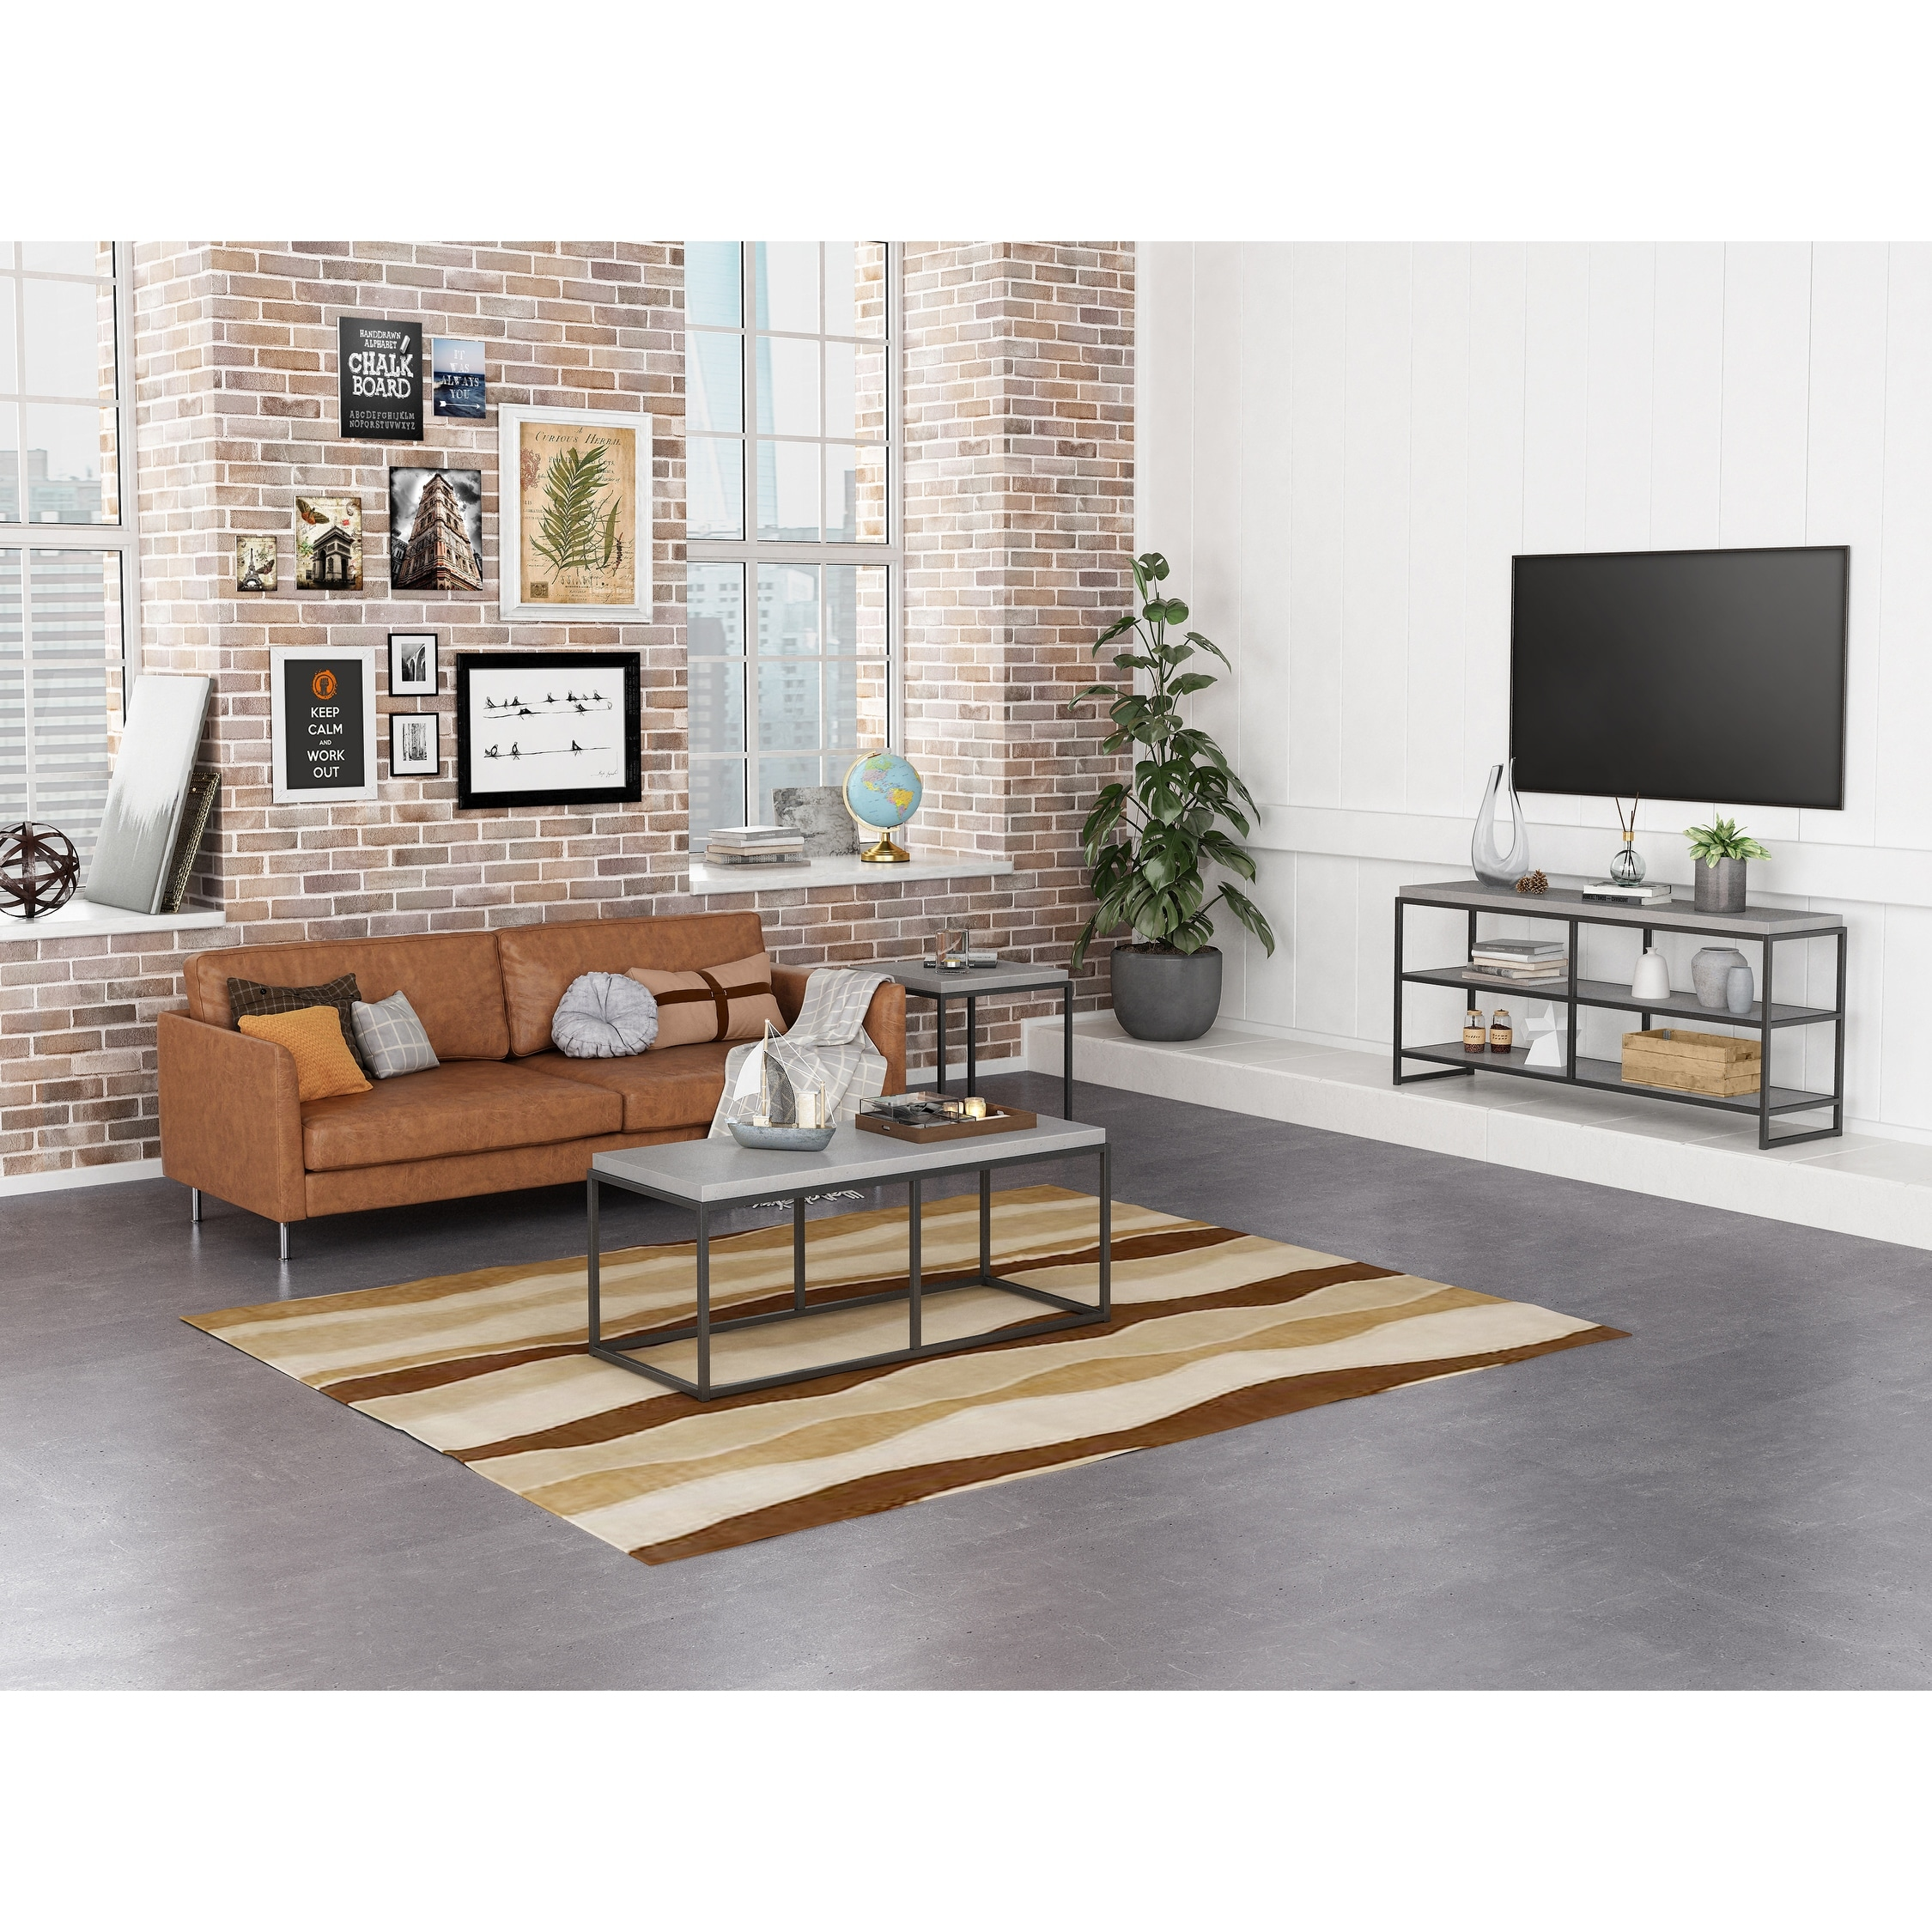 Tv Board Industrial Industrial Cement Look Three Tier Tv Stand - Overstock - 31691507